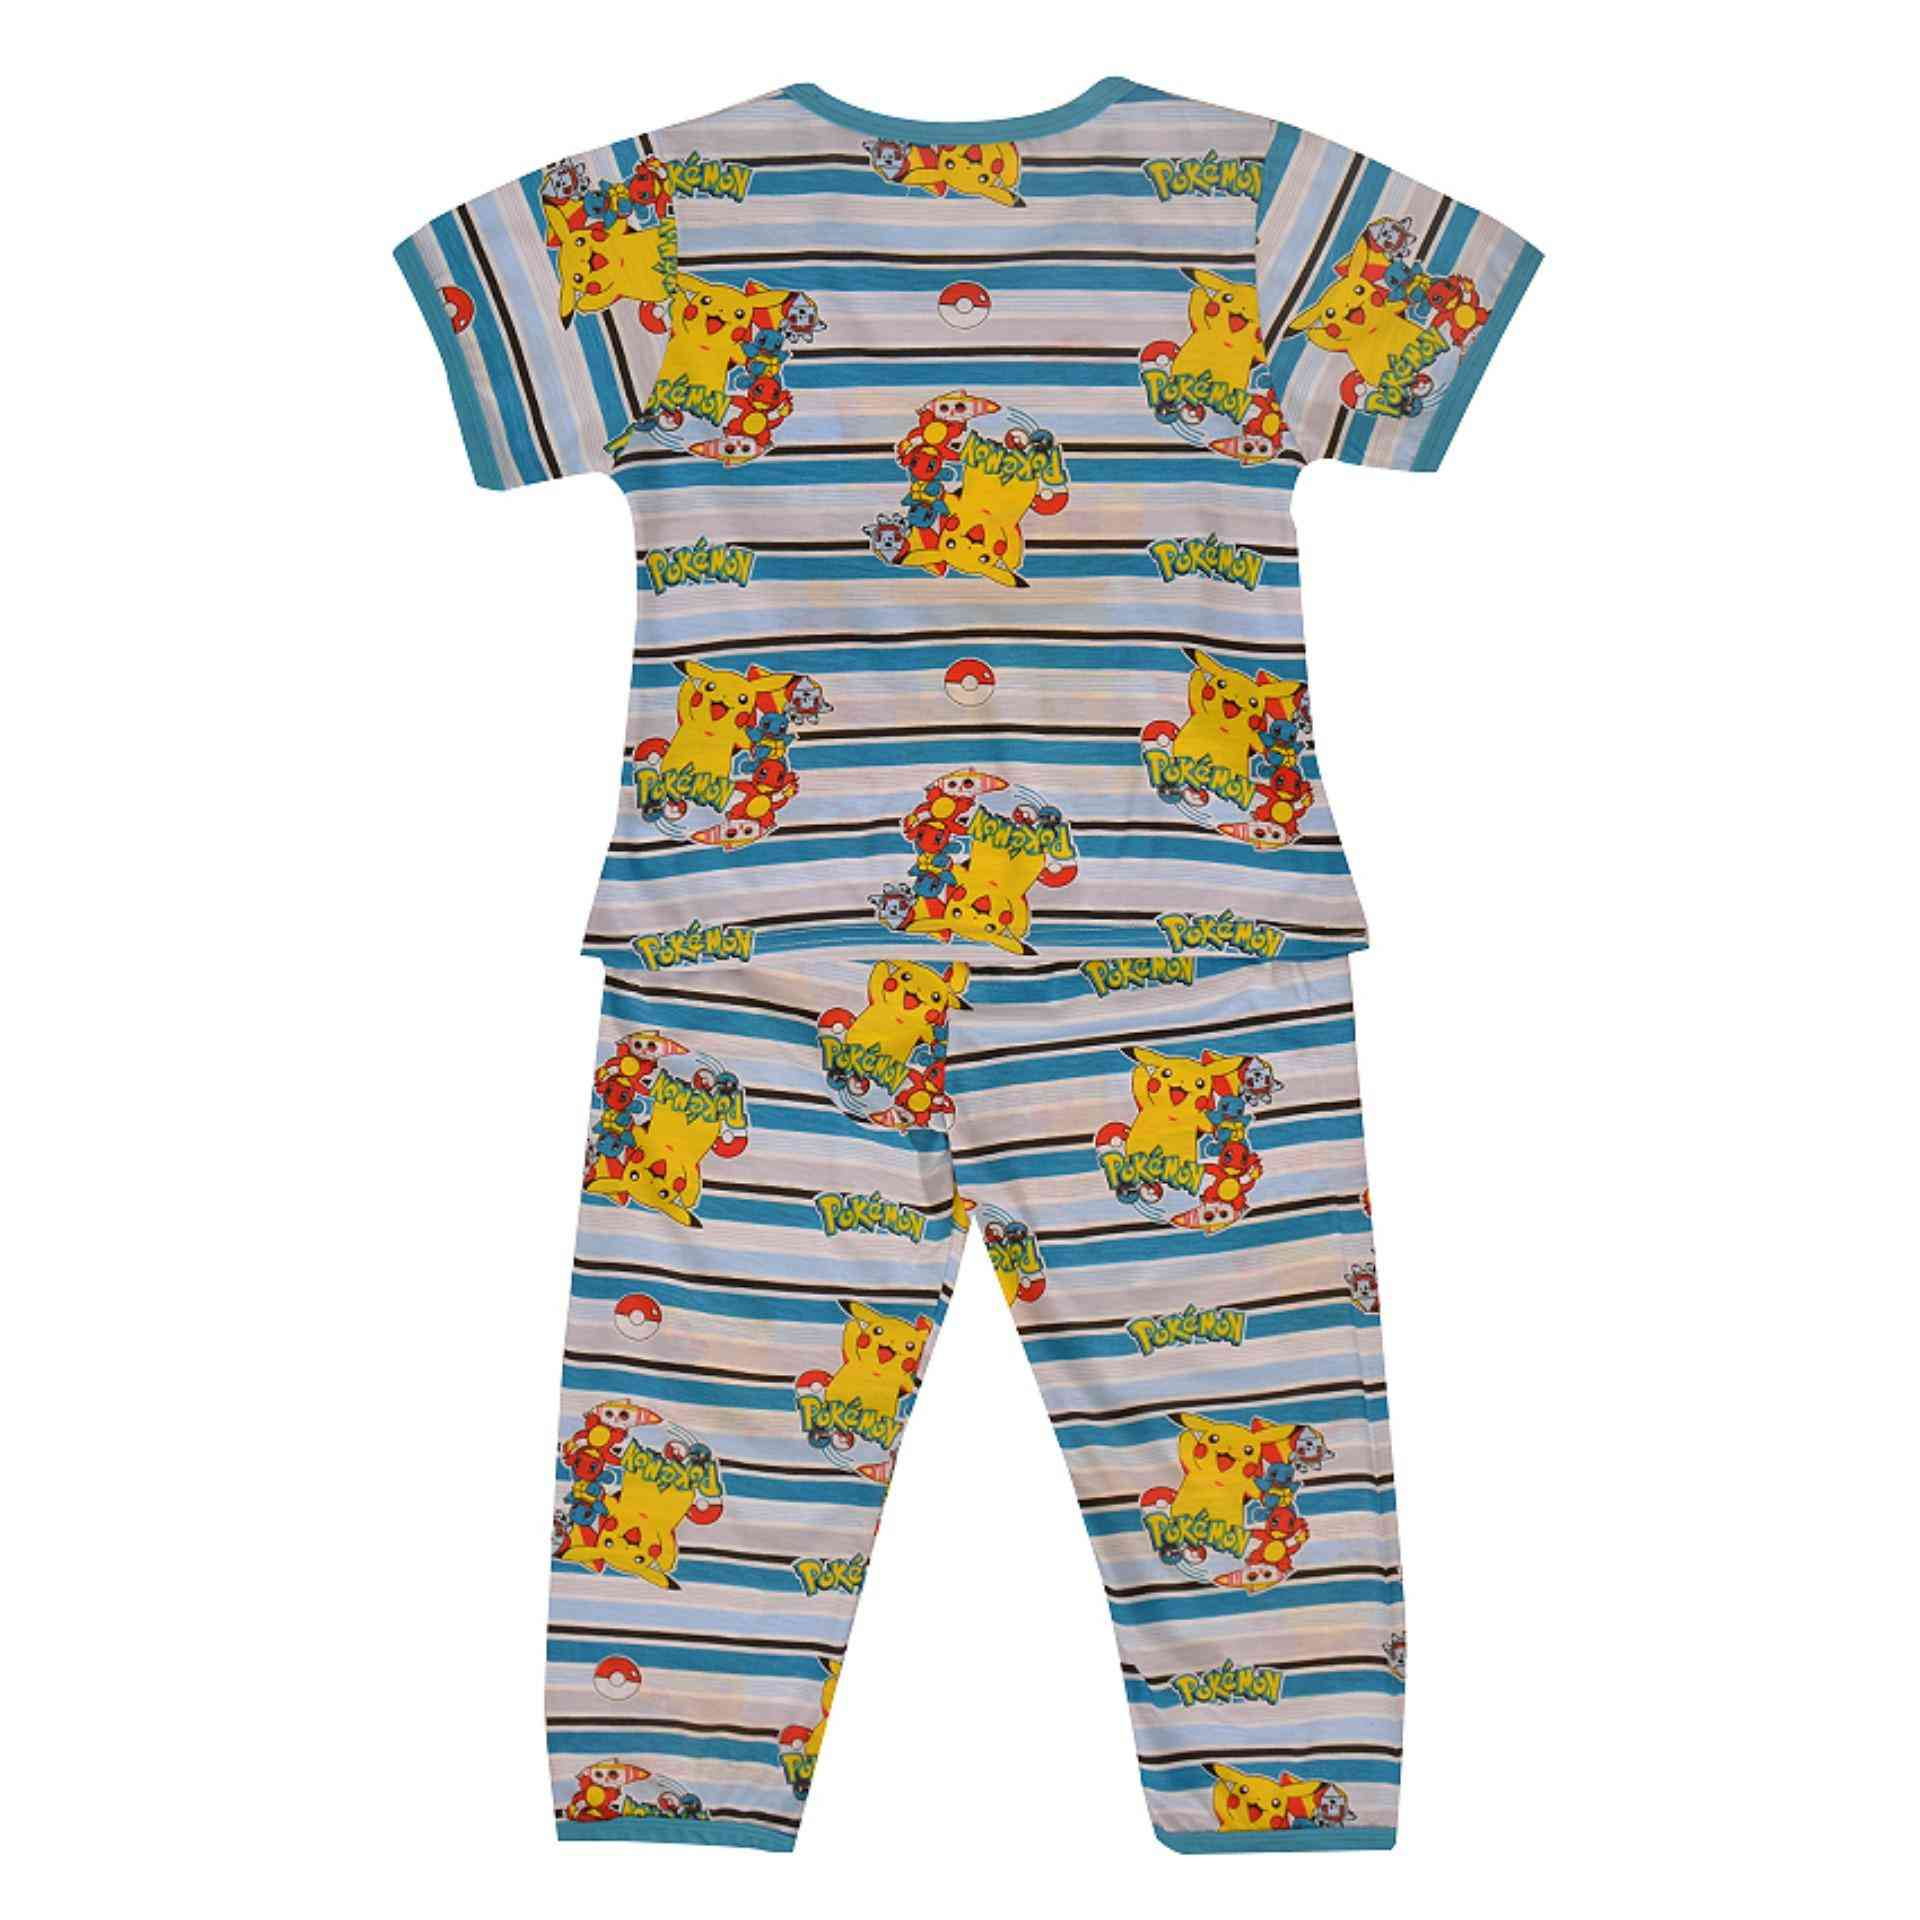 Pack of 2 Pure Cotton Night Suit (Pajama + Tshirt) for Boys - Pokemon